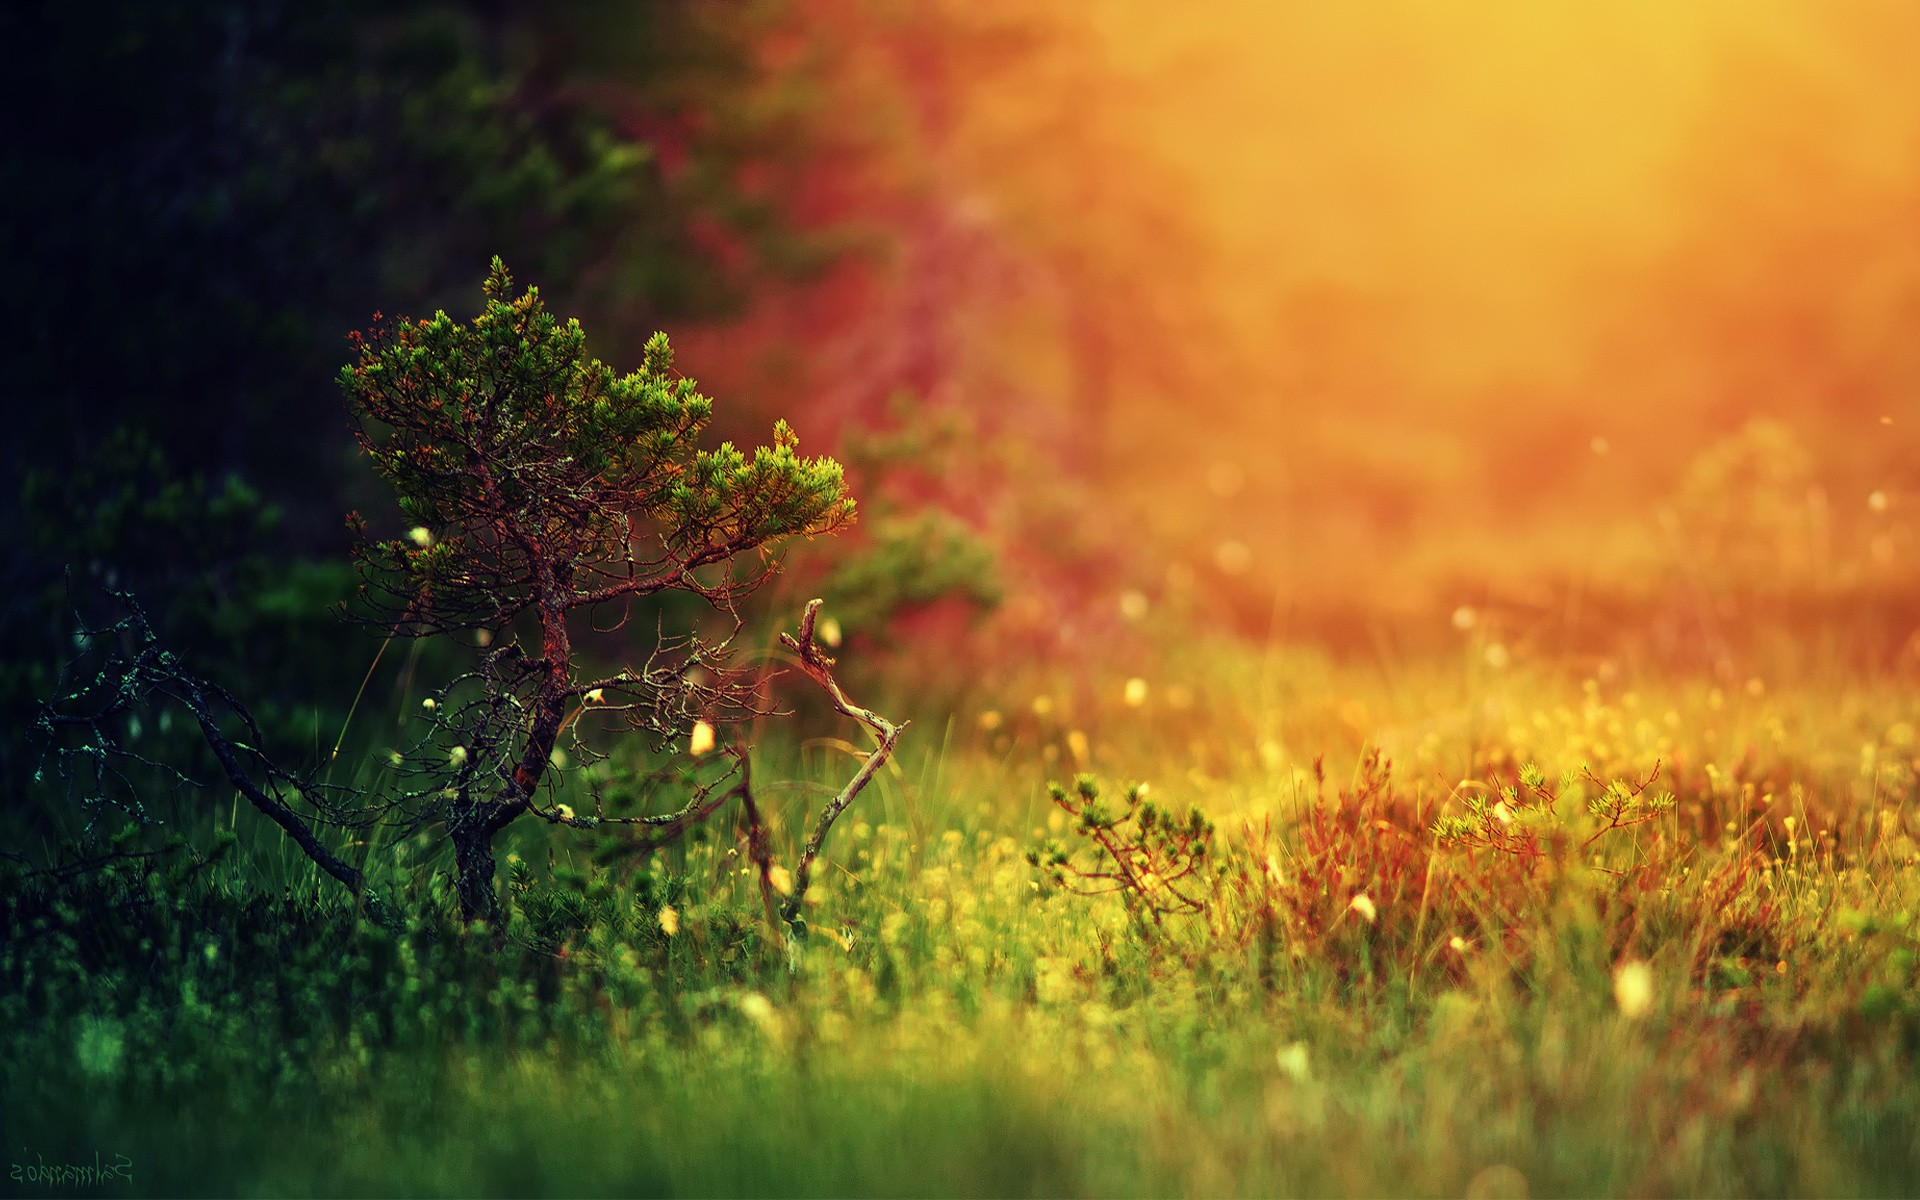 Fall In Love Couples Wallpapers Landscape Depth Of Field Grass Blurred Nature Trees